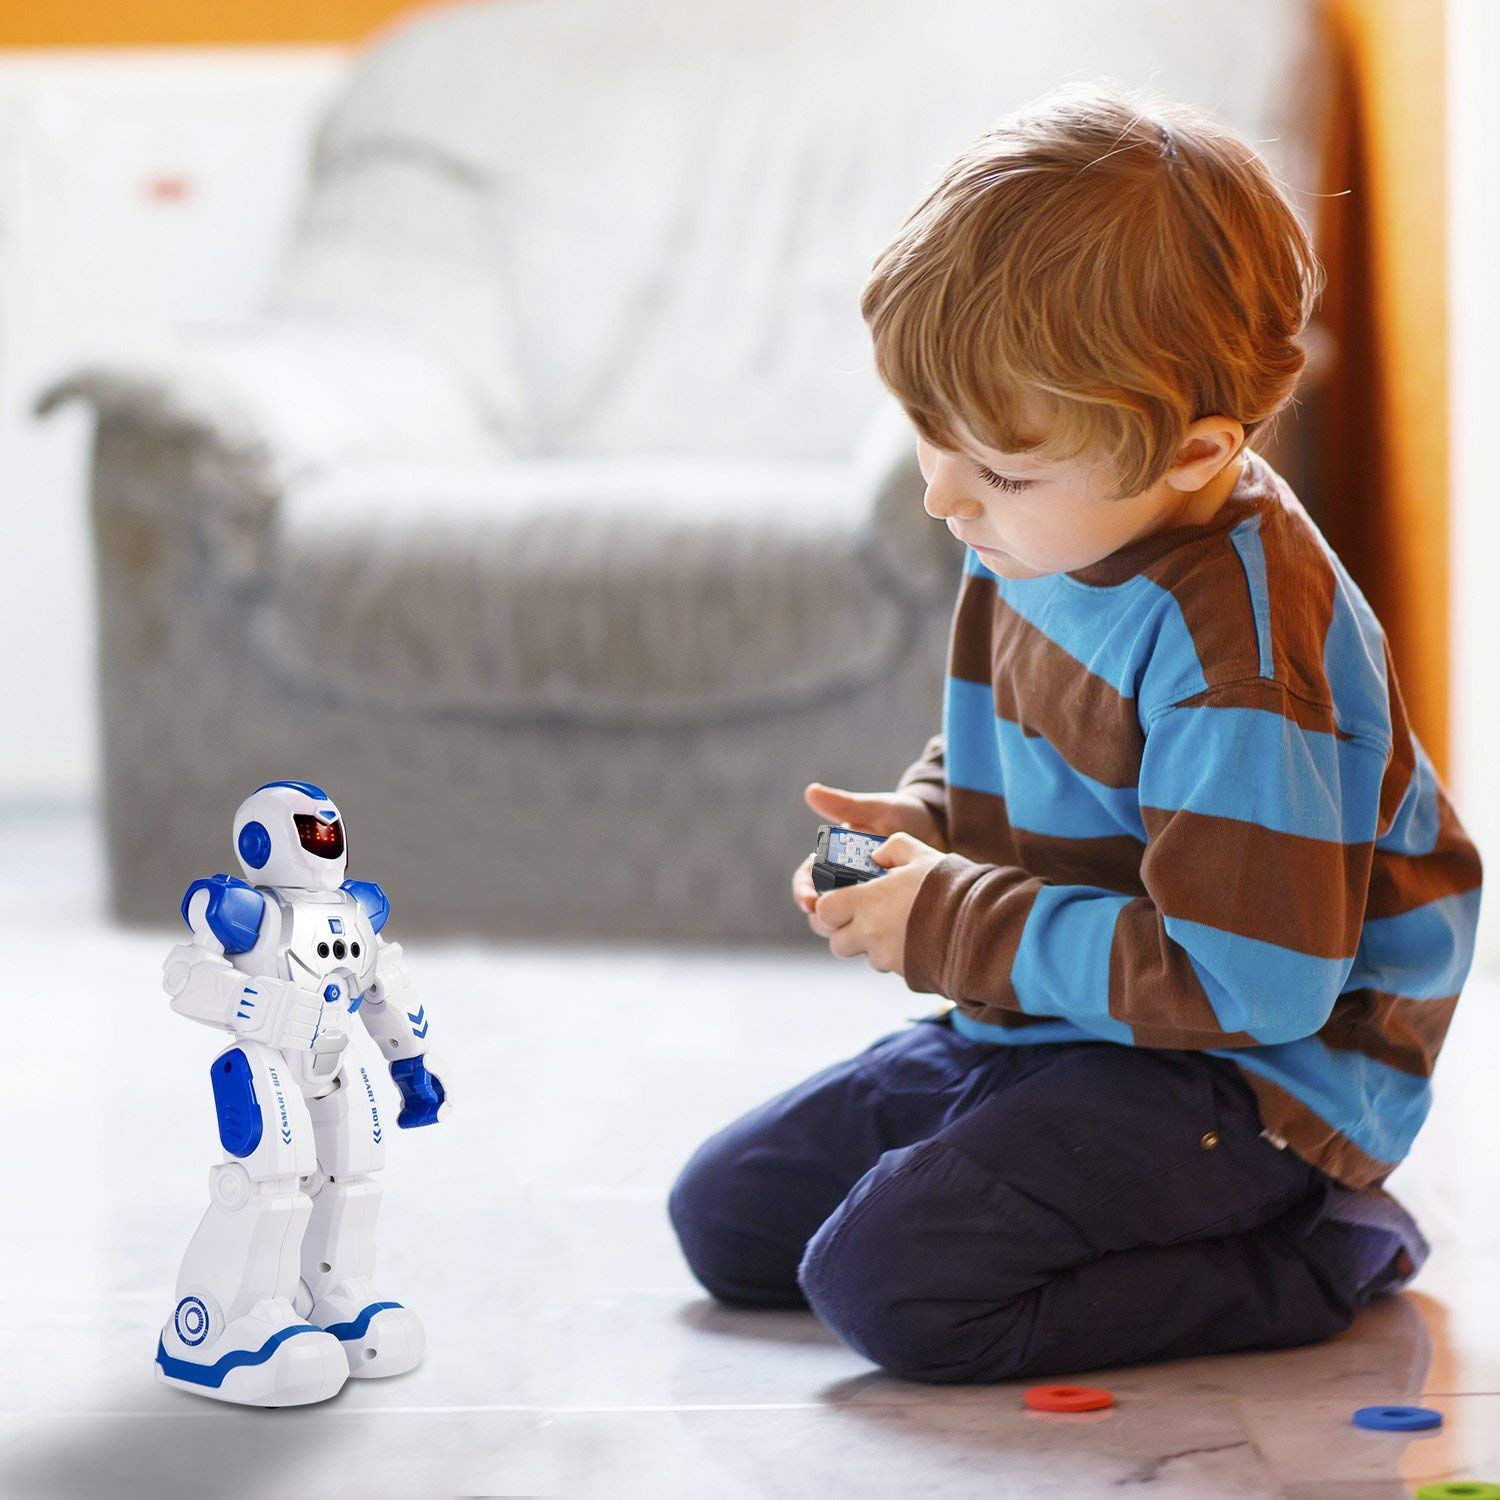 Elemusi Remote Wireless Control Robot for Kids Toys,Smart Robots with Singing,Dancing,Gesture Sensing Entertainment Robotics for Children (Blue) by Elemusi (Image #7)